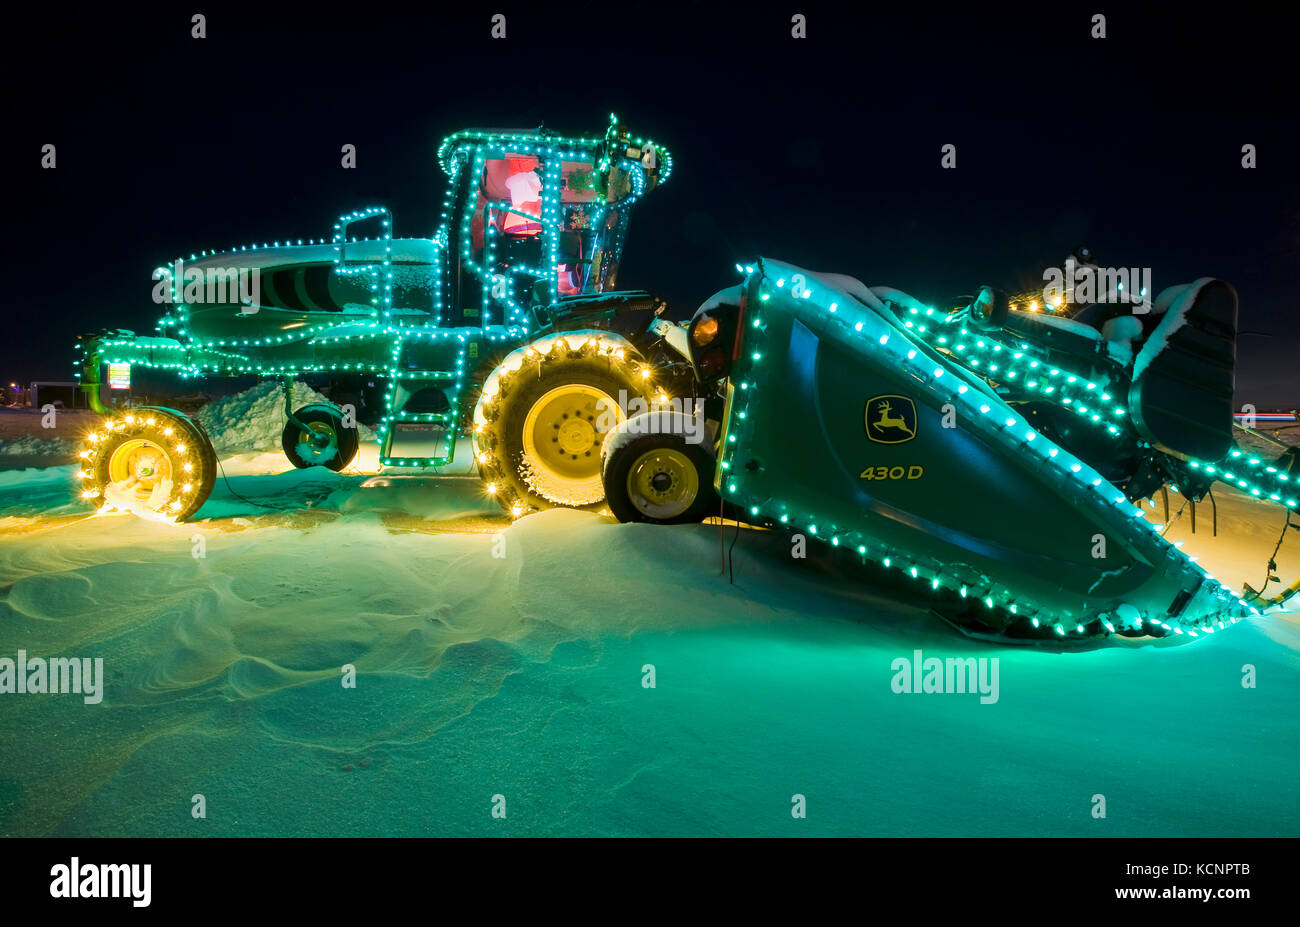 swather with Christmas lights, Manitoba, Canada - Stock Image